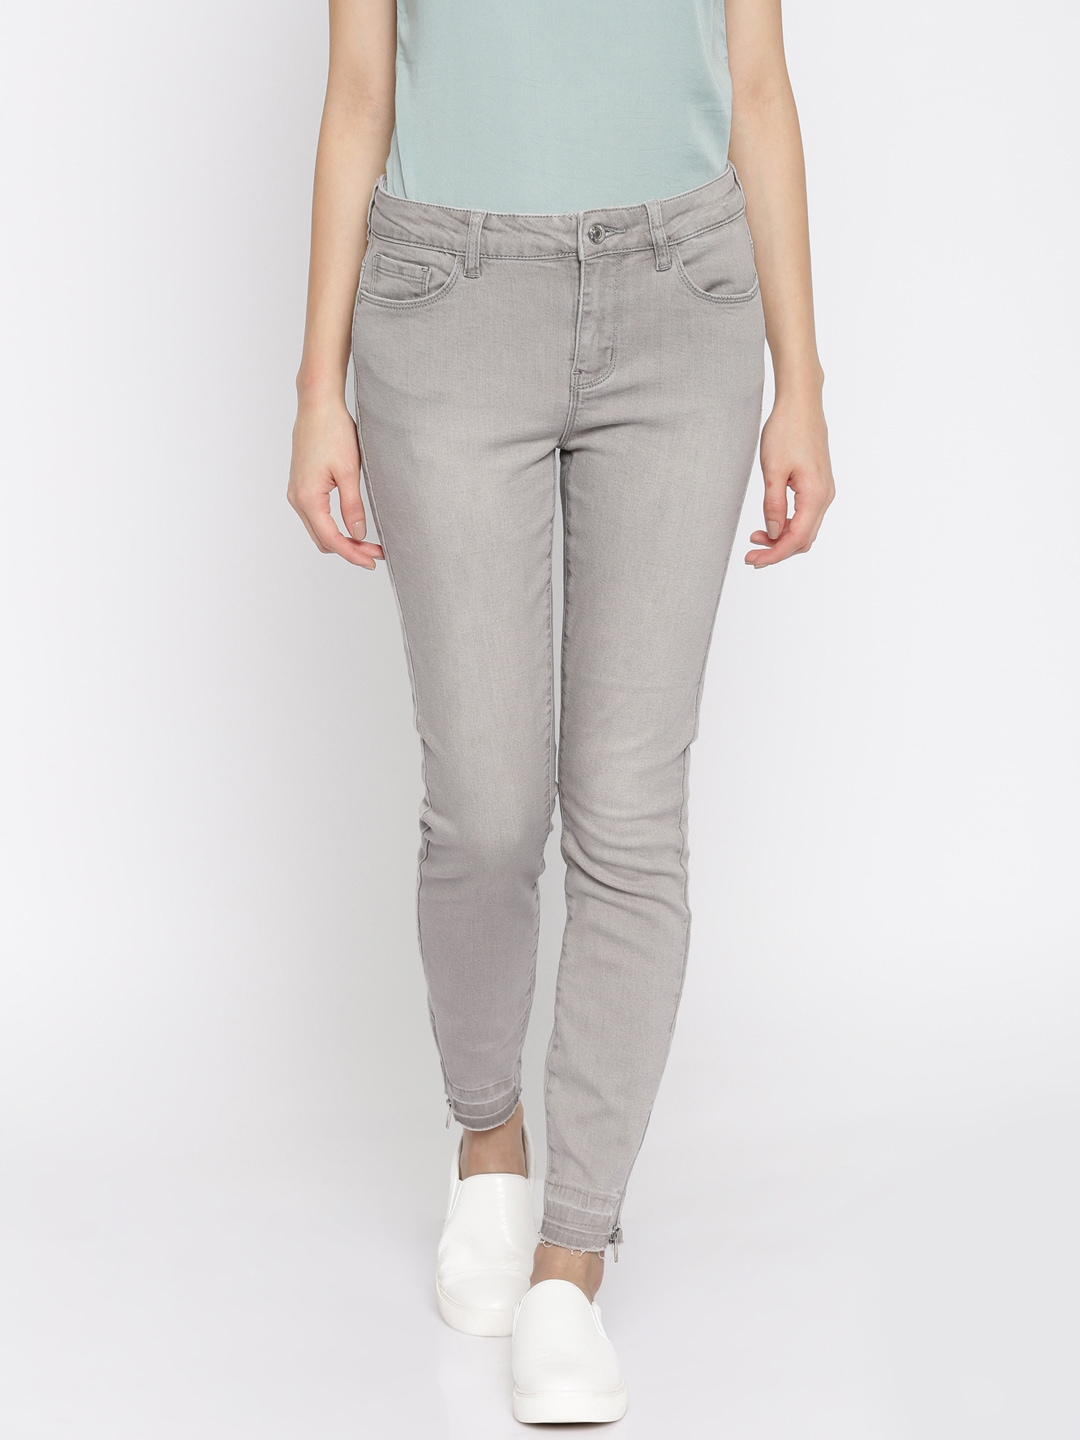 Vero moda super stretch skinny jeans review